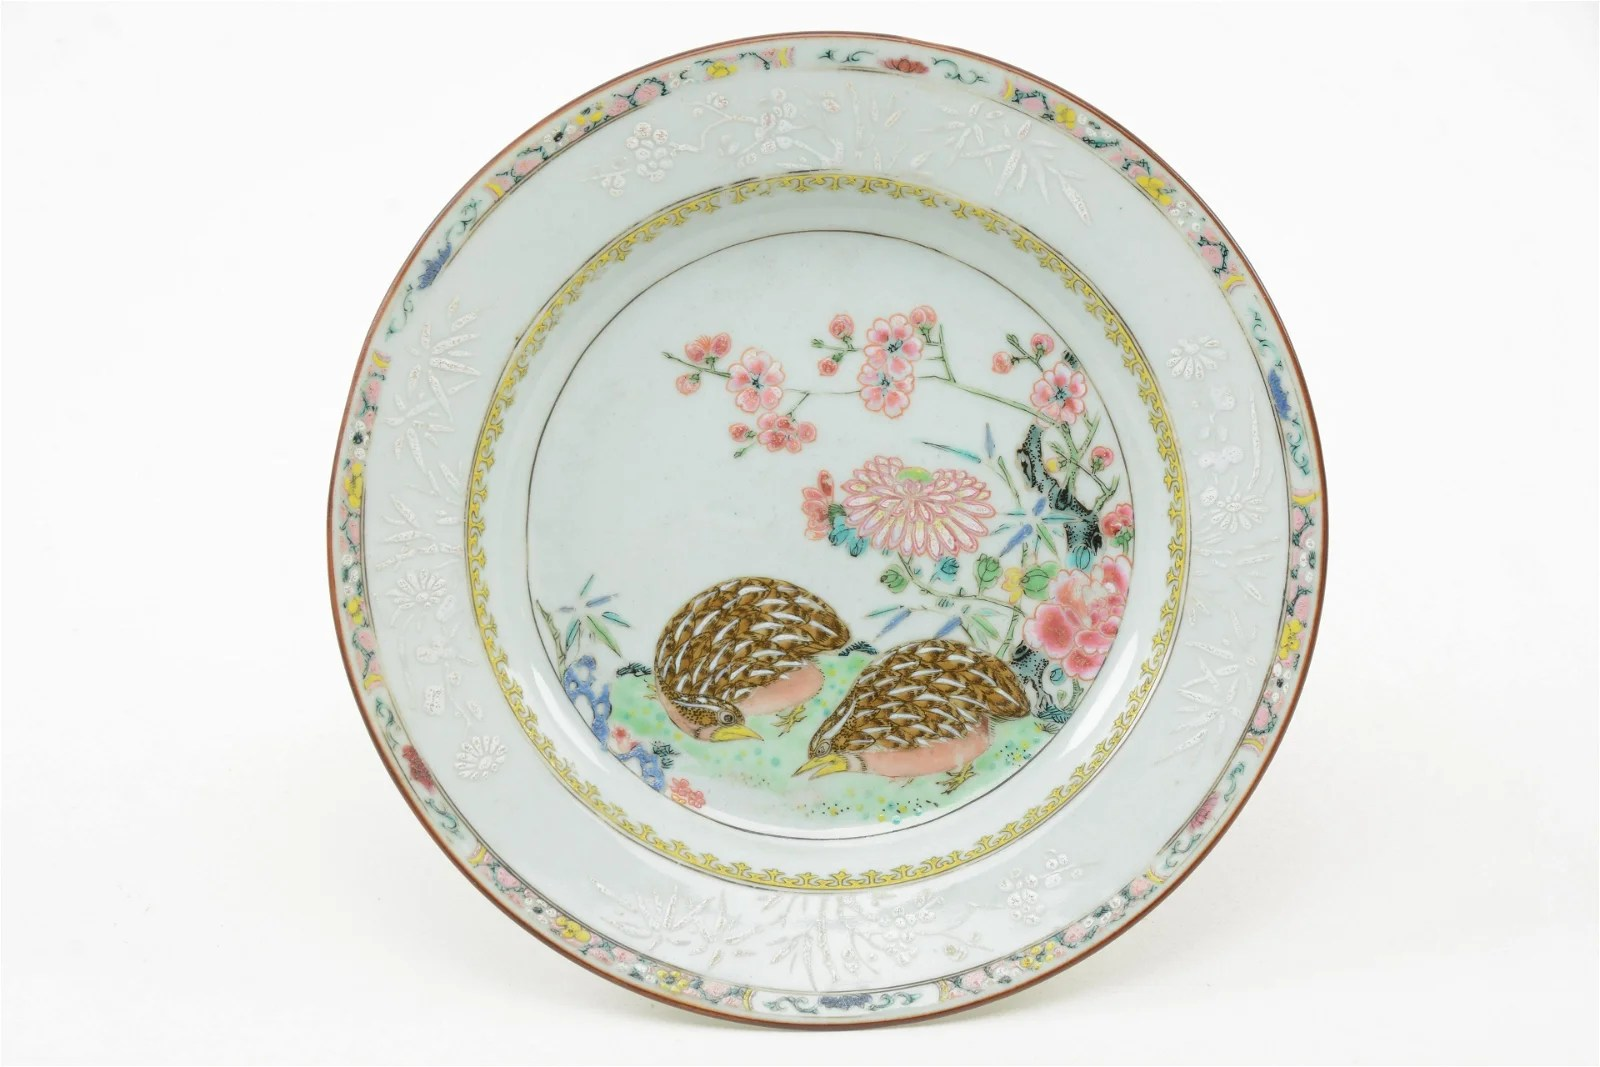 Chinese Porcelain Plate, 18th Century